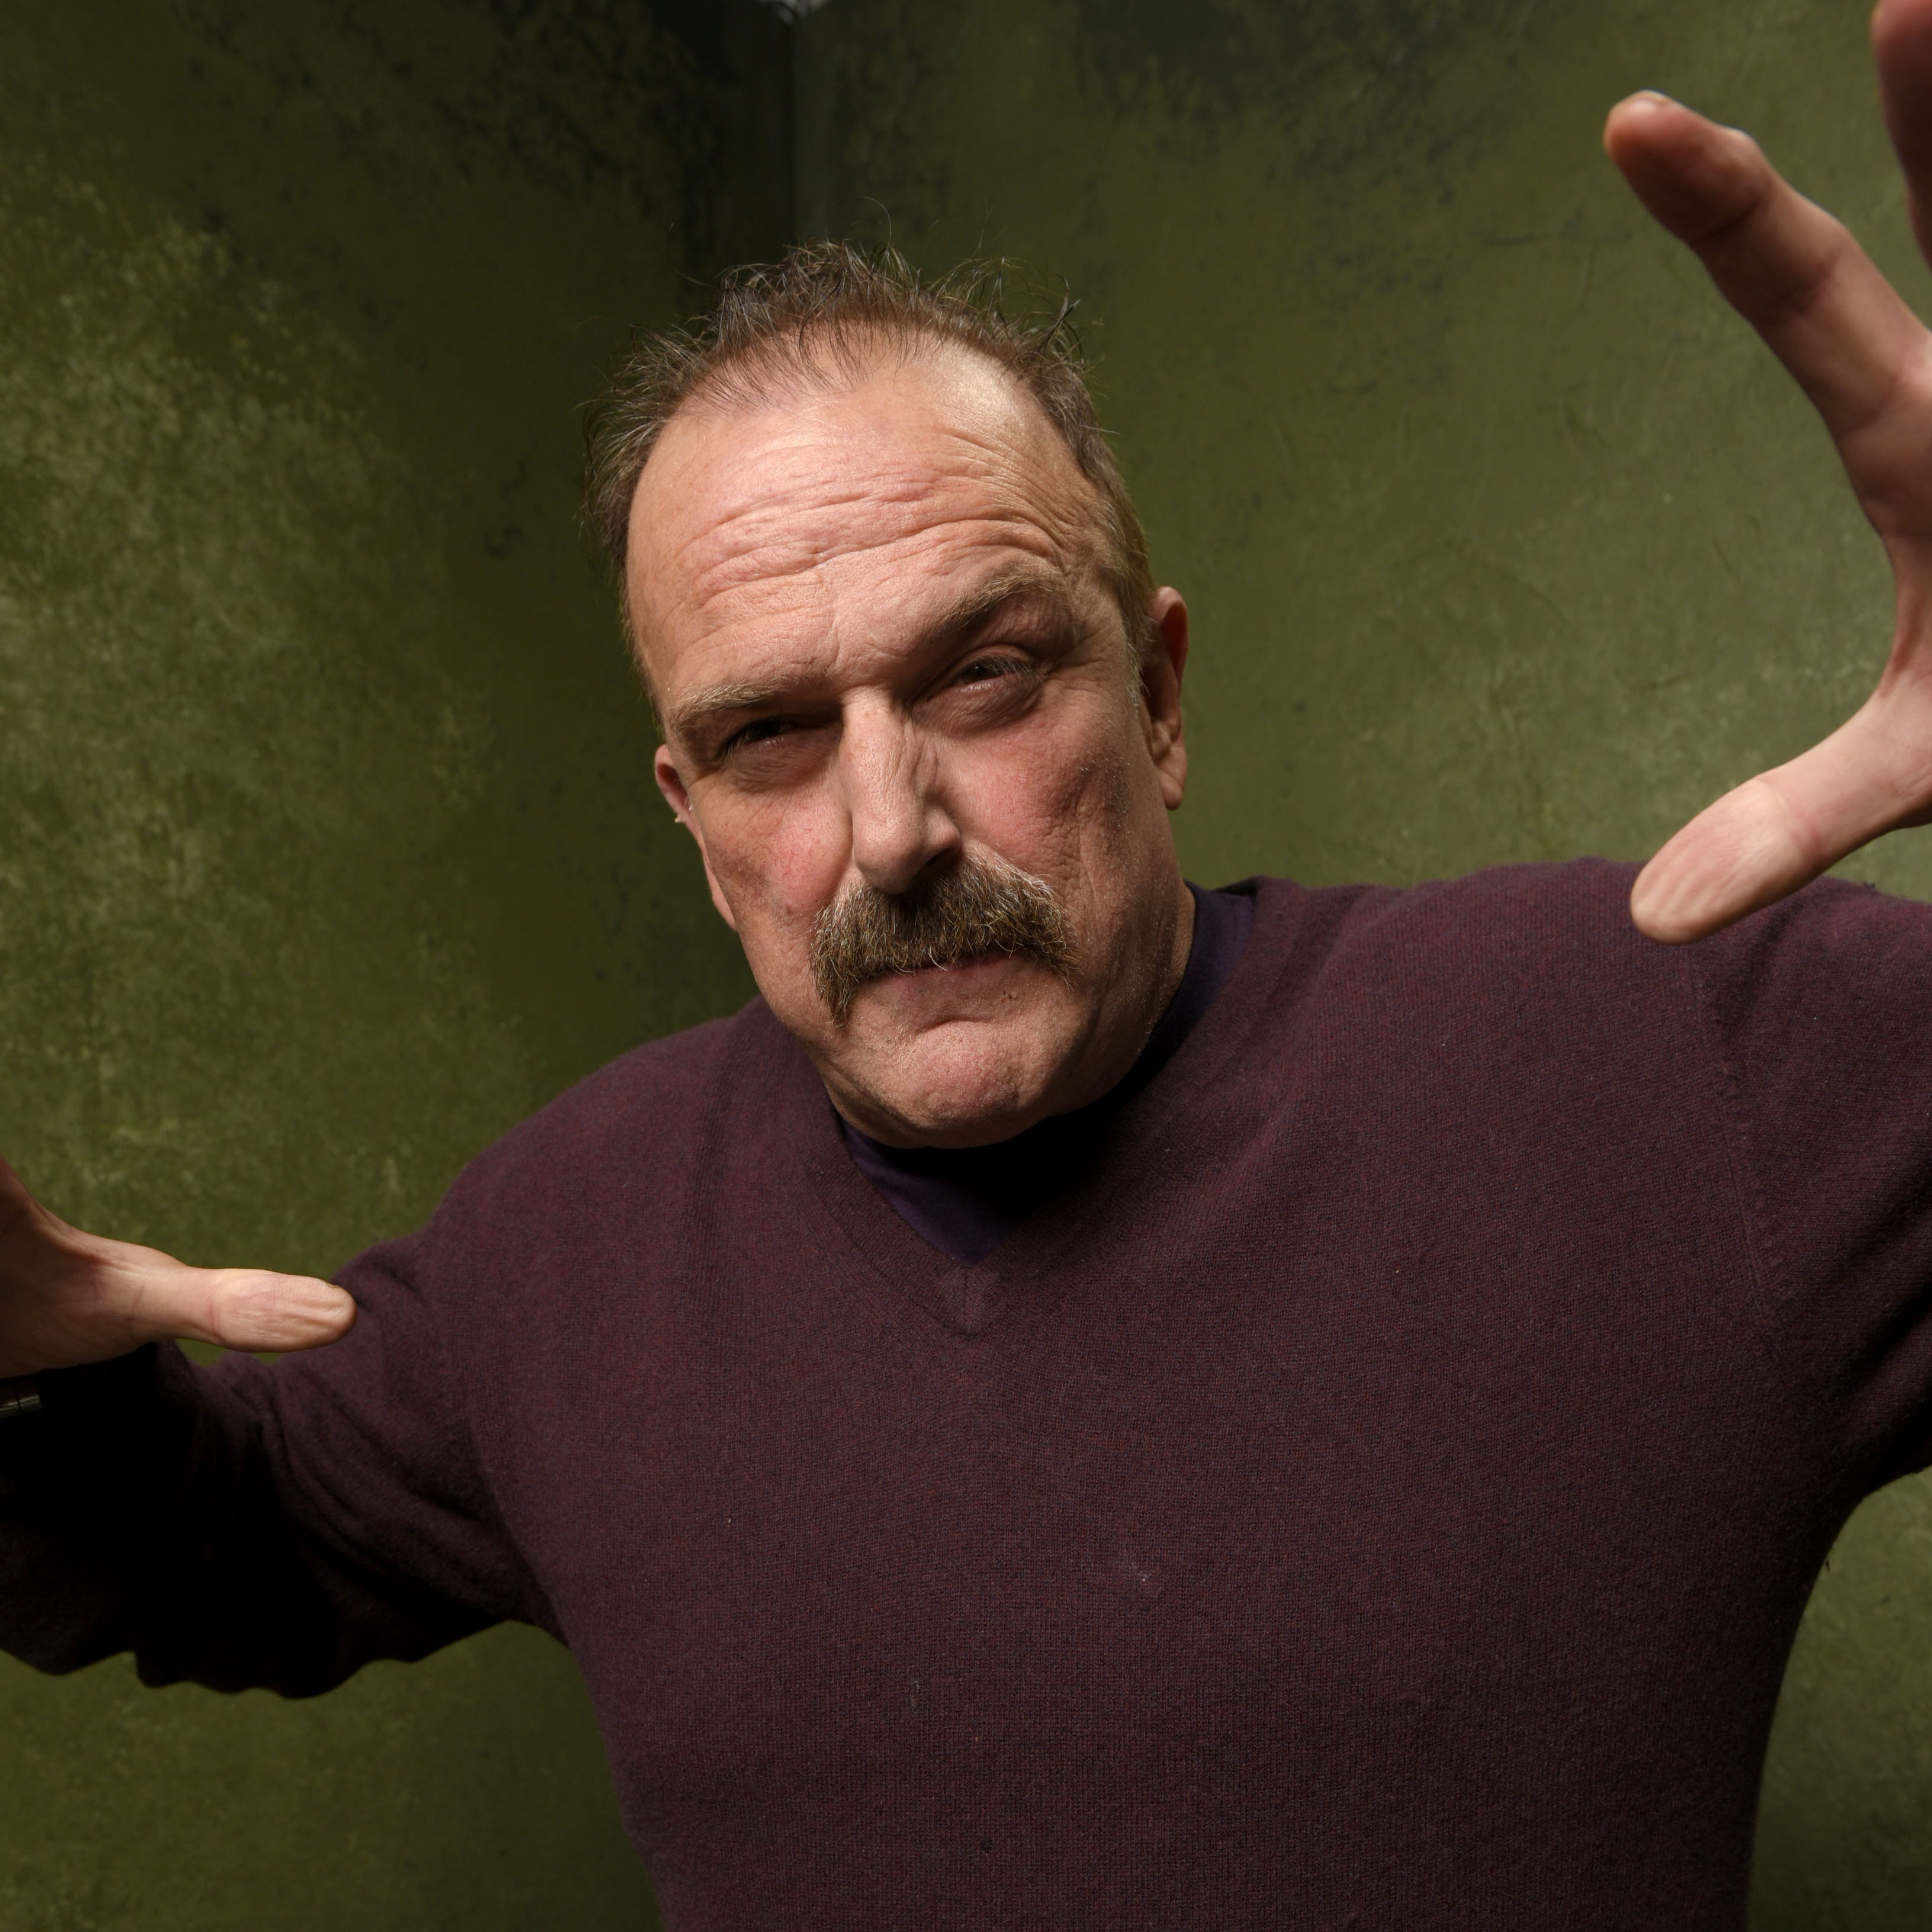 Jake 'The Snake' Roberts brings WWE dirty details, story of sobriety on tour